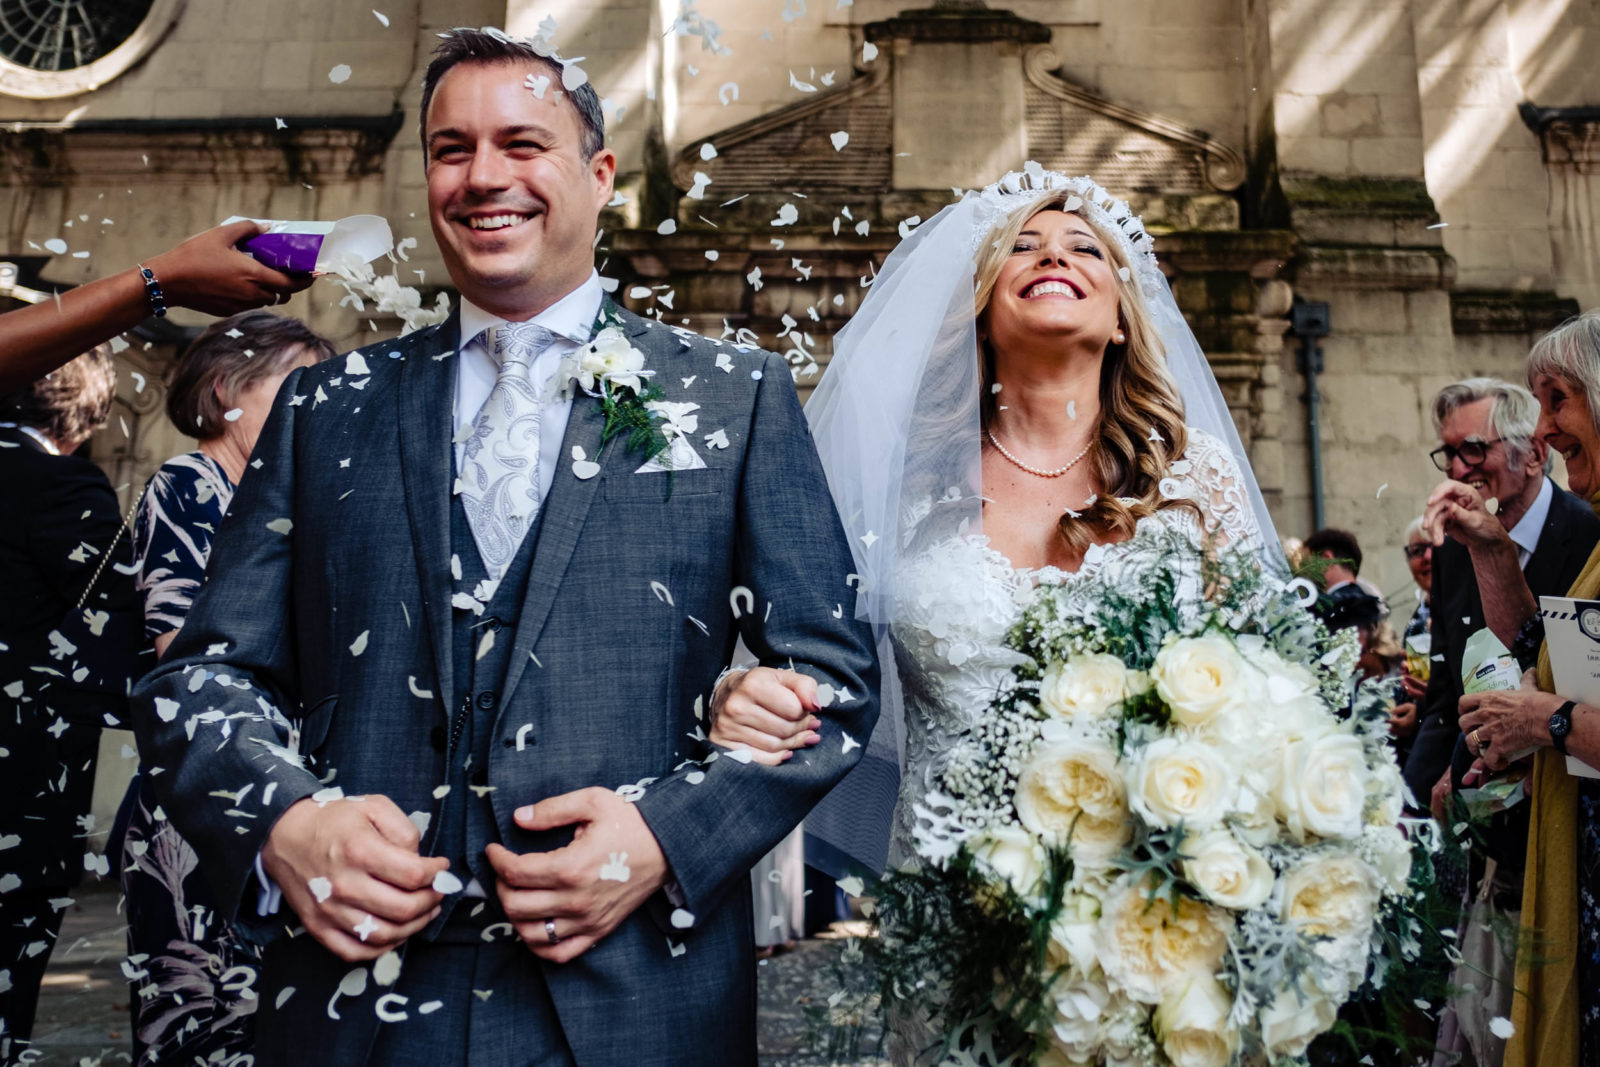 Bride and groom smiling covered in confetti